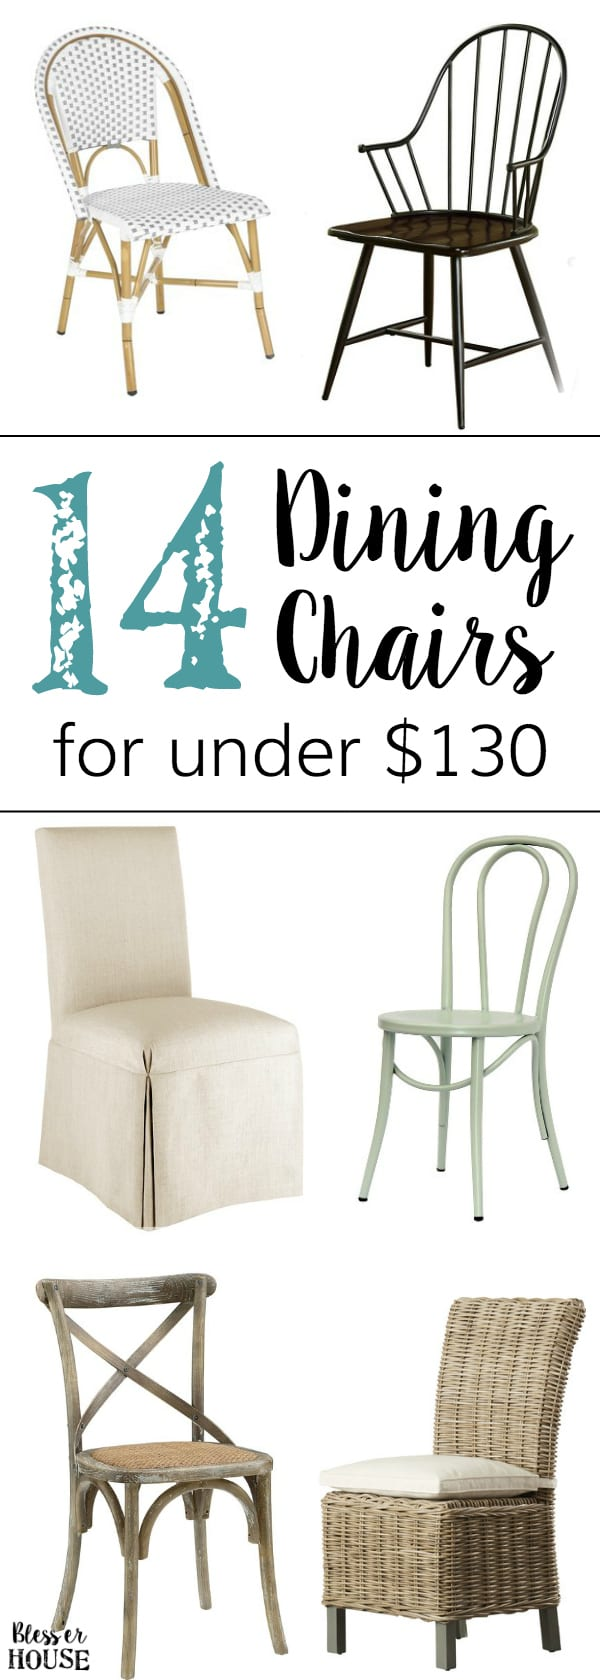 14 Dining Chairs for a Small Budget | blesserhouse.com - A home decor shopping guide with 14 industrial French farmhouse style dining chairs for a small budget, many for less than $70!